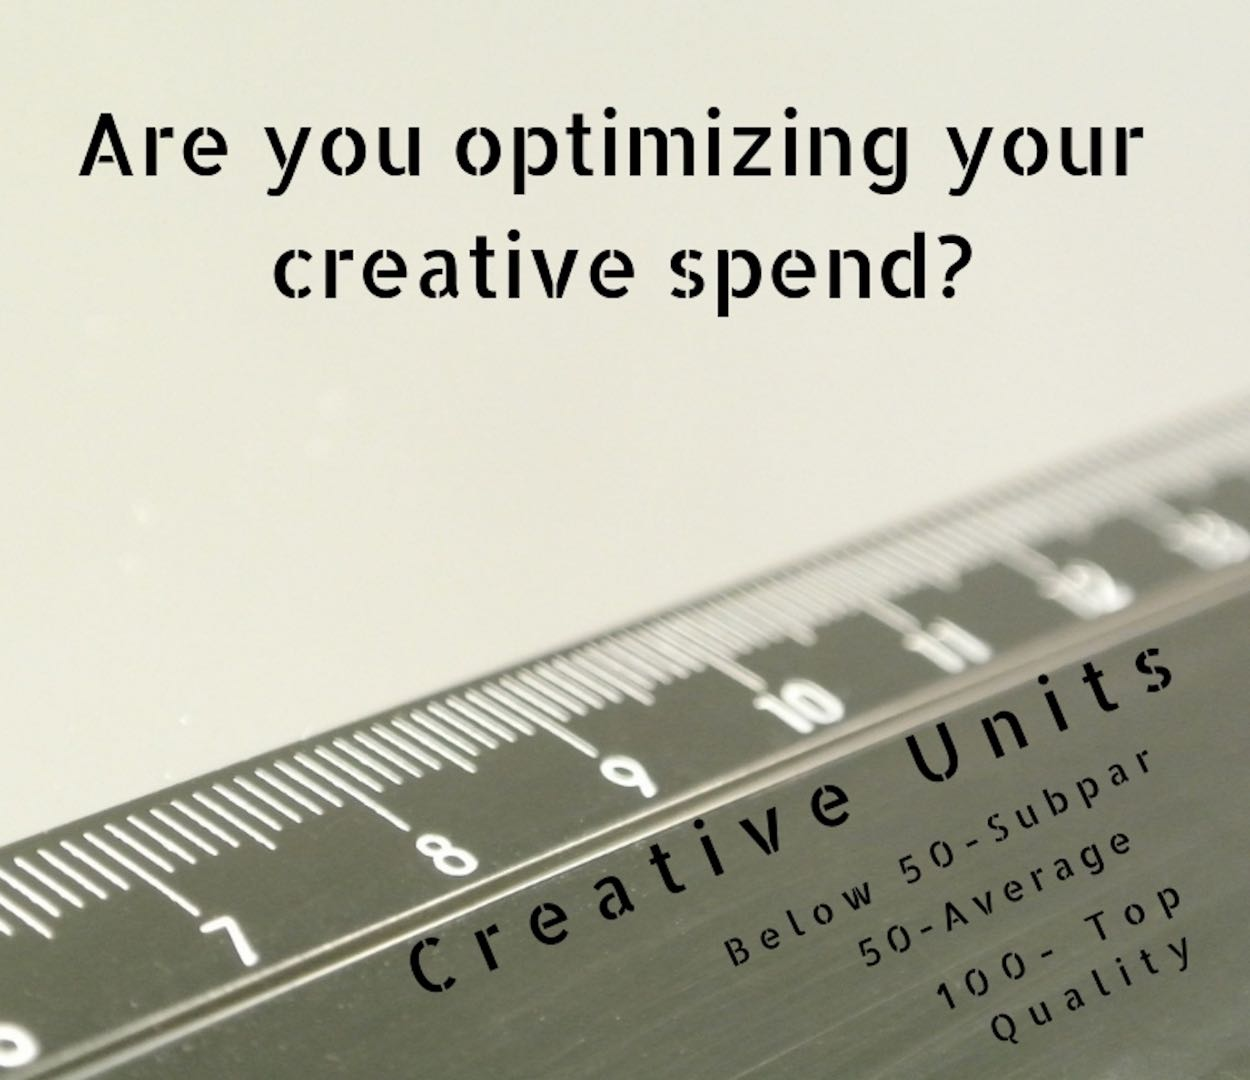 are you optimizing your creative spend